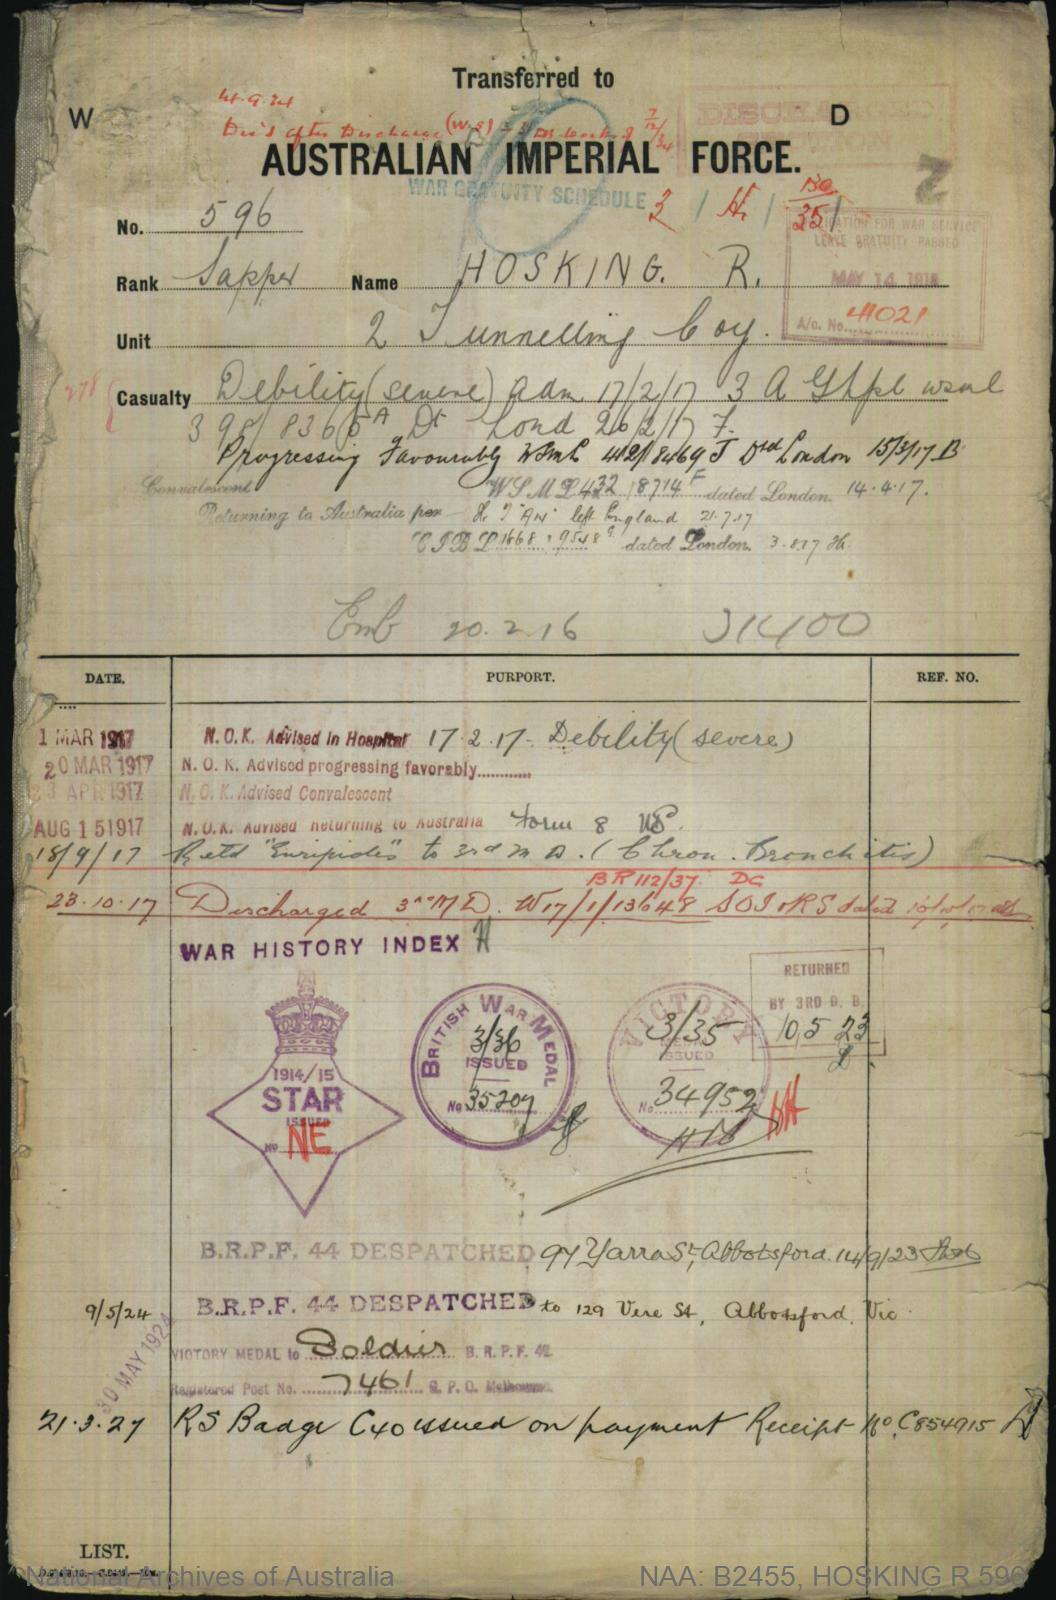 HOSKING Richard : Service Number - 596 : Place of Birth - Ballarat Vic : Place of Enlistment - Melbourne Vic : Next of Kin - (Mother) HOSKING Rosi